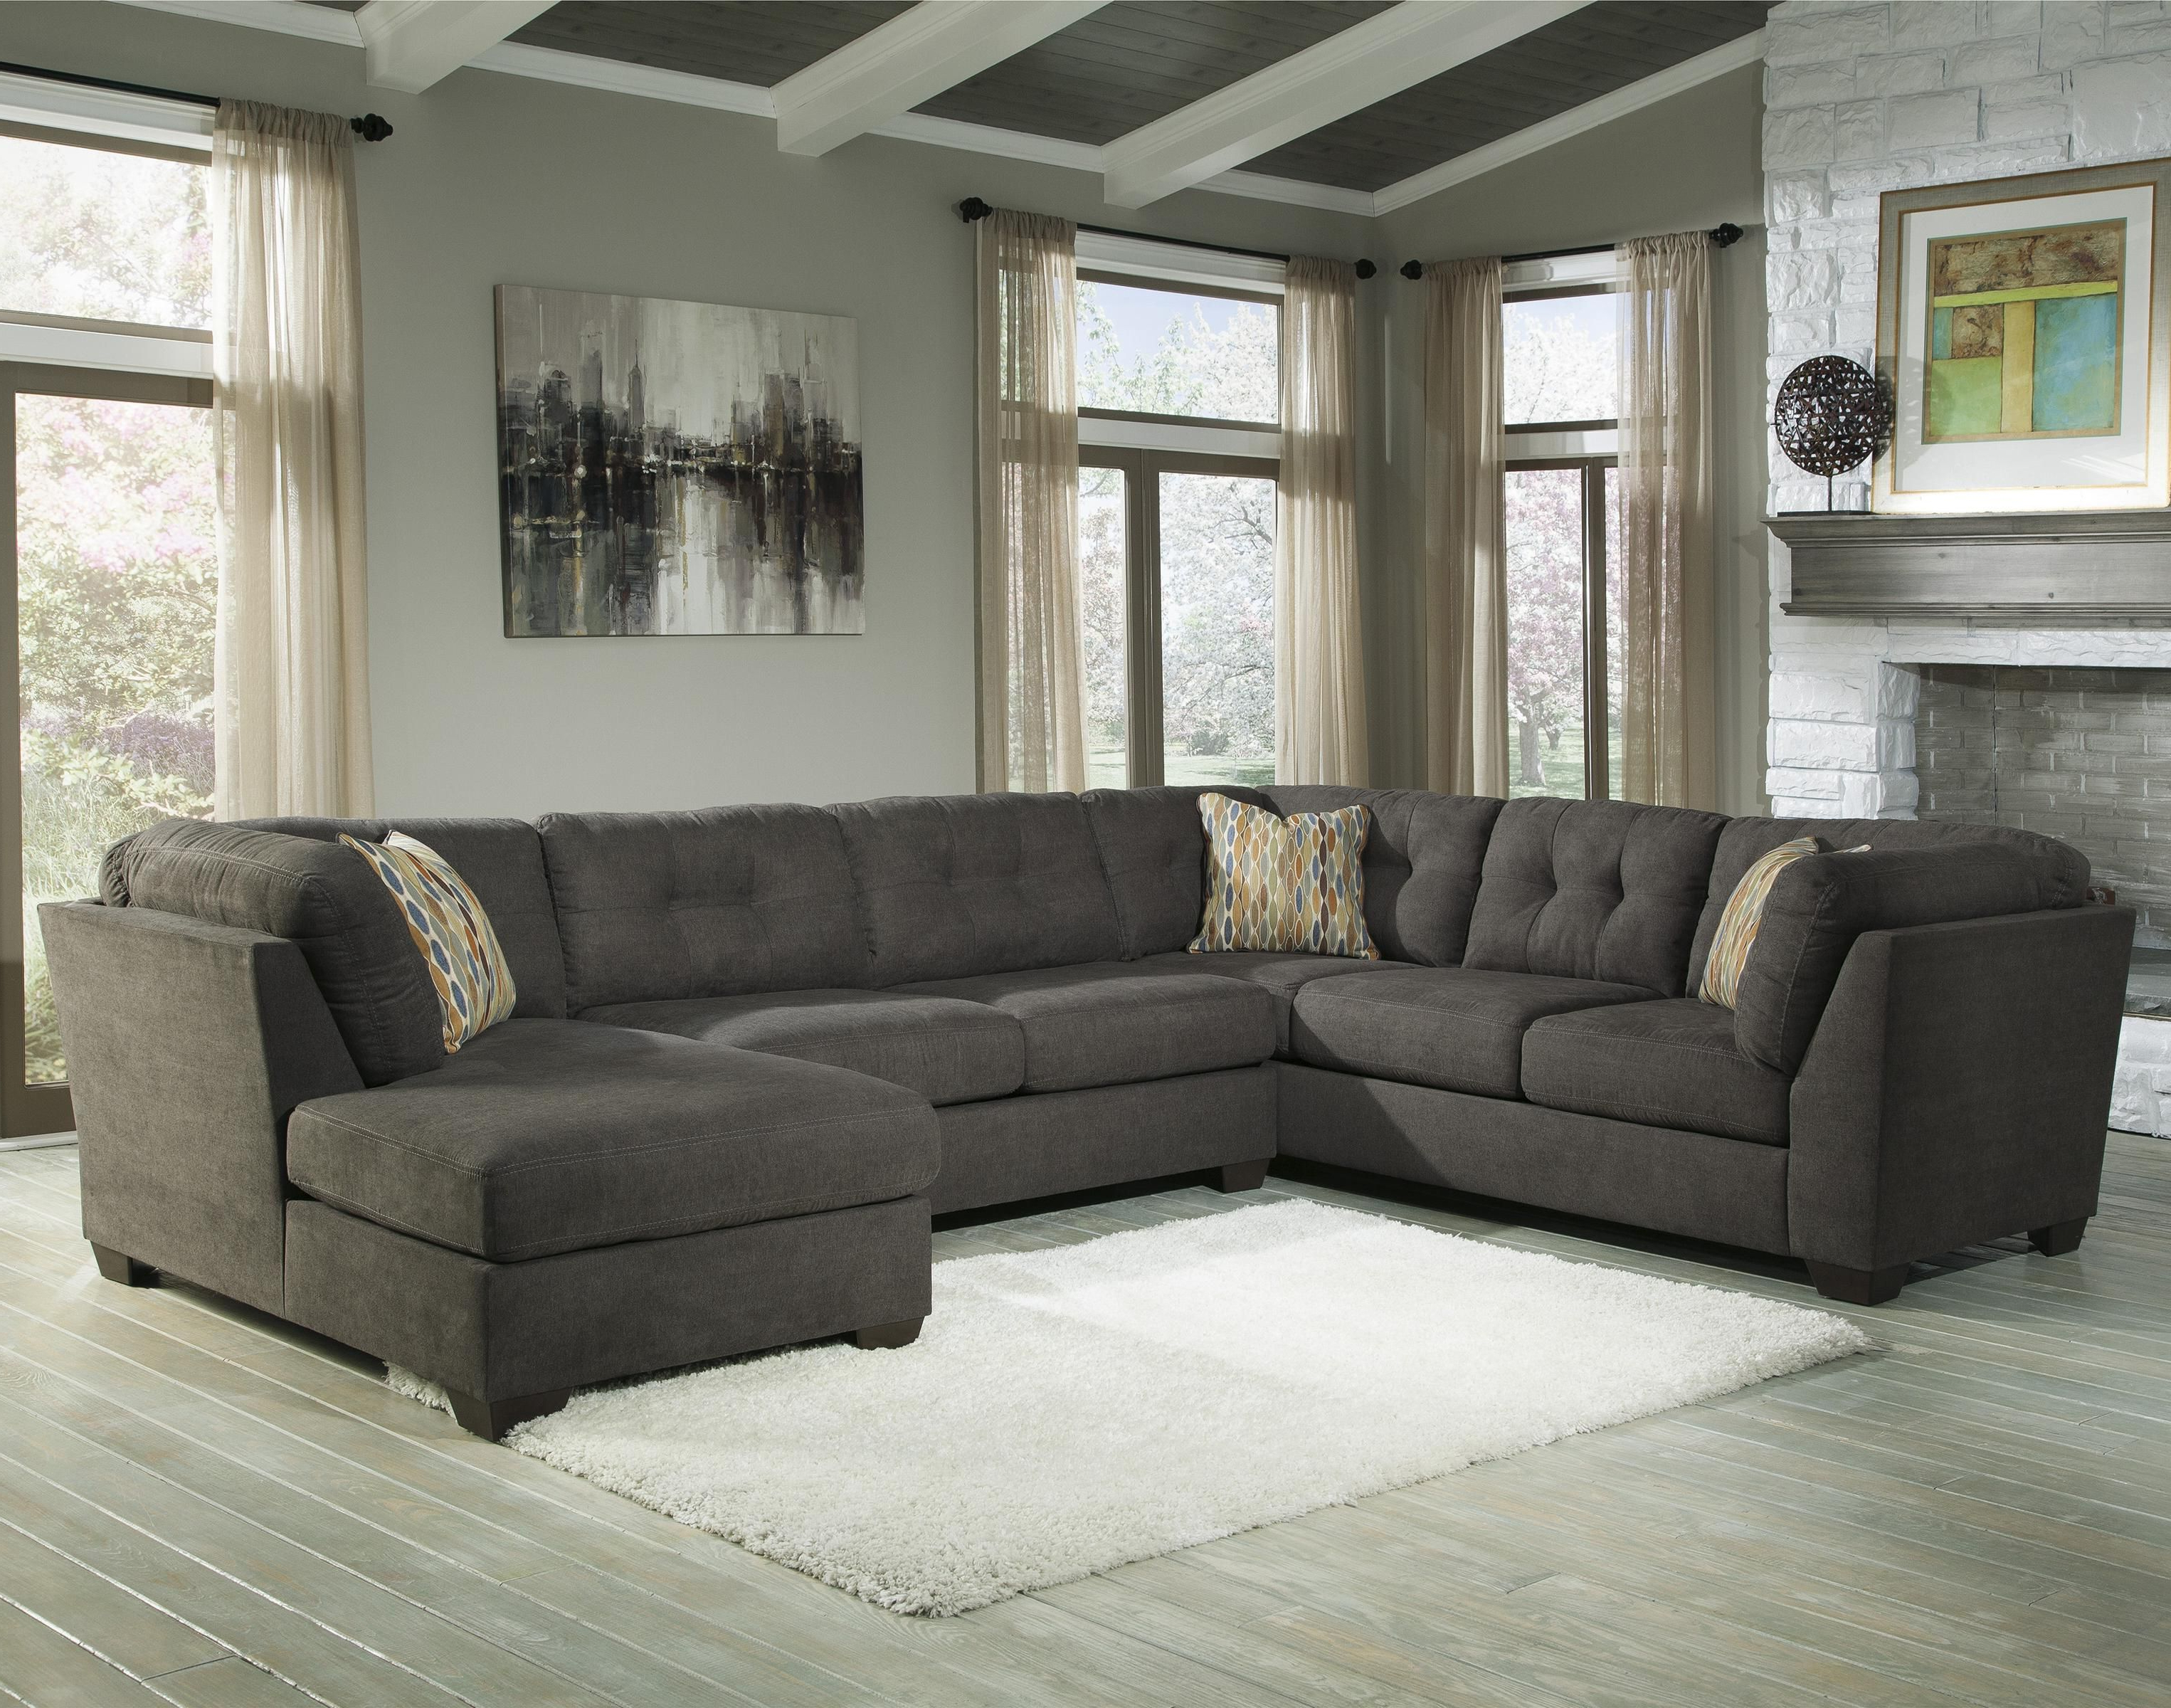 Lucy Dark Grey 2 Piece Sectionals With Raf Chaise Pertaining To Most Recent 3 Piece Sectional Sleeper Sofa Design Inspiration – Designing An (View 9 of 20)